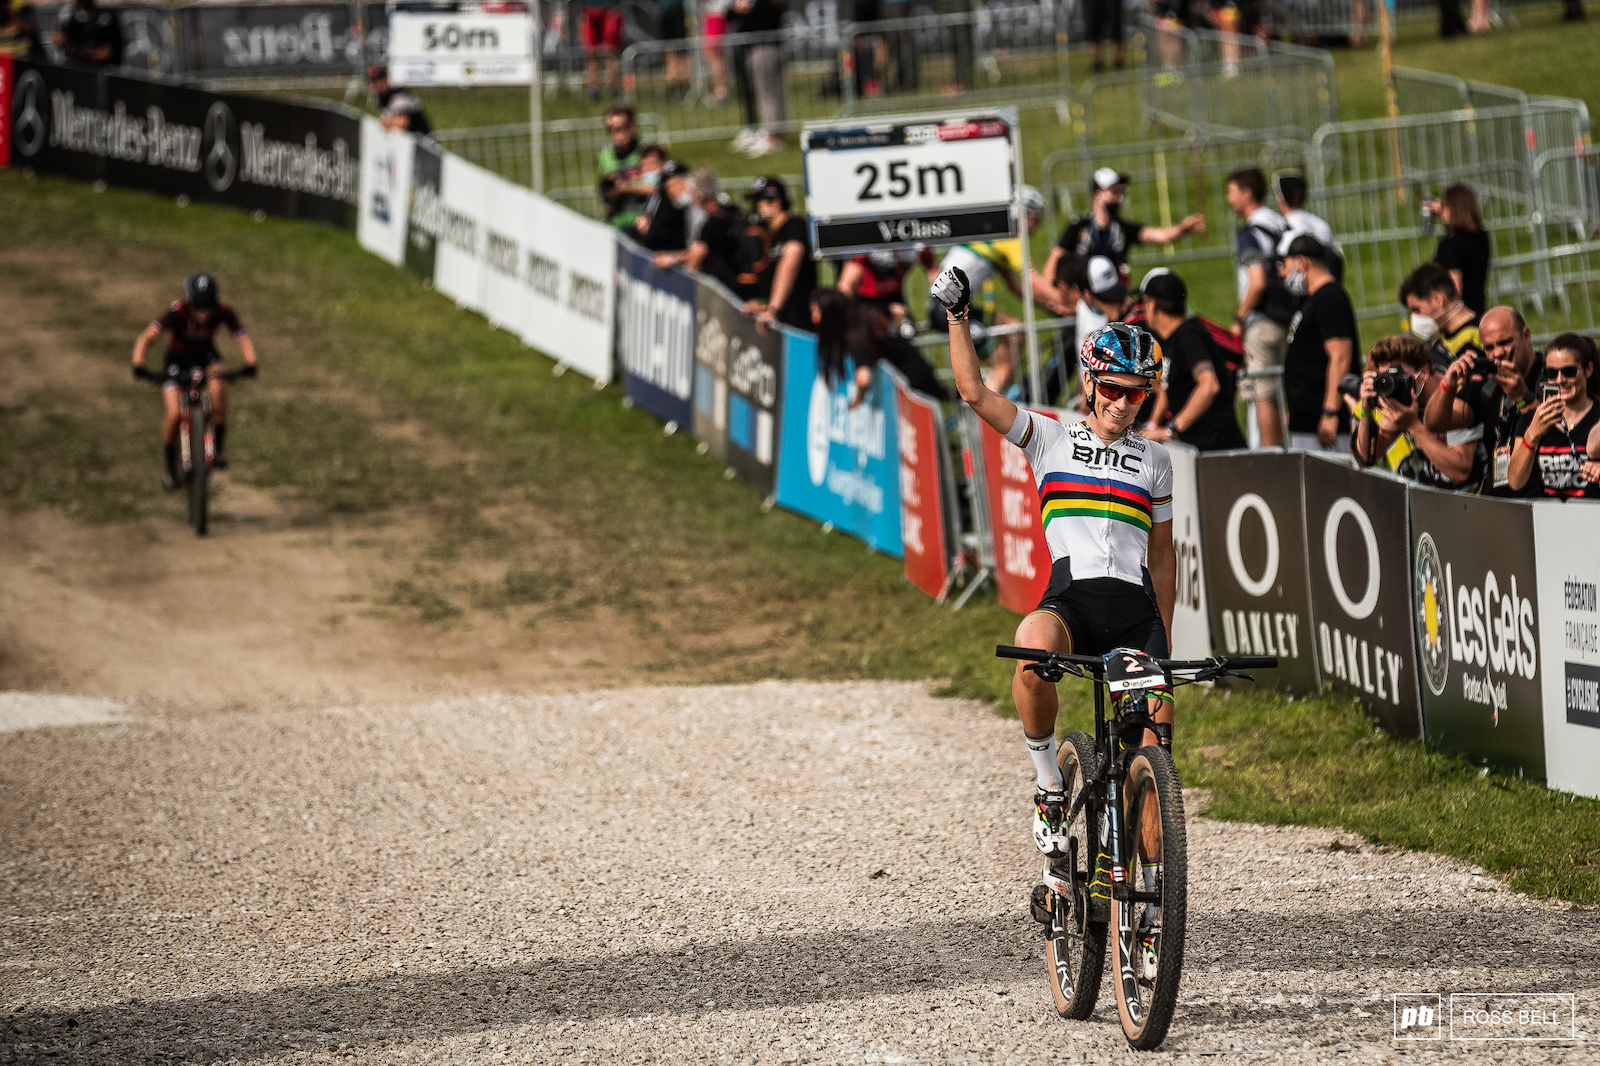 Pauline Ferrand Prevot eventually managed to break free and finish 4 seconds up on Sina Frei.